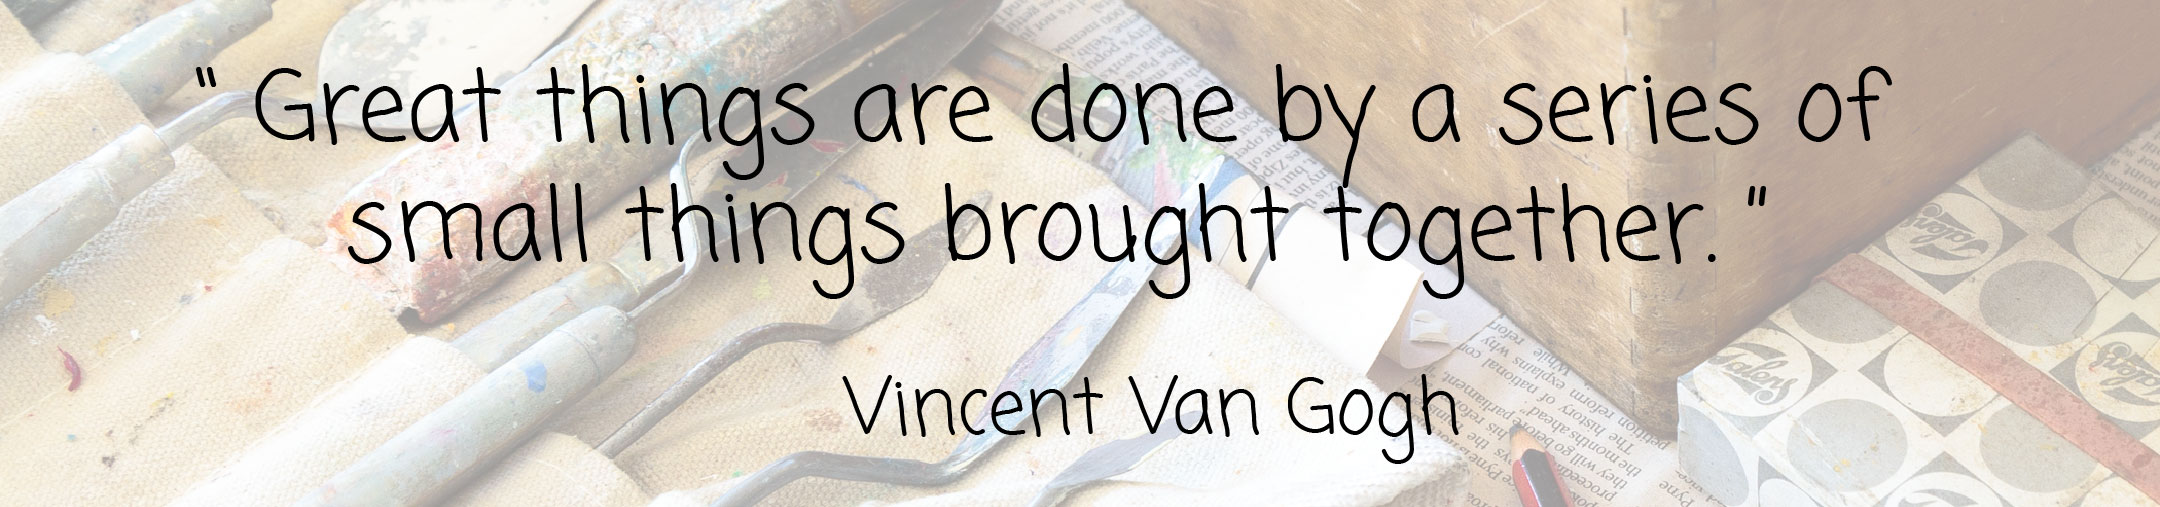 great-things-are-done